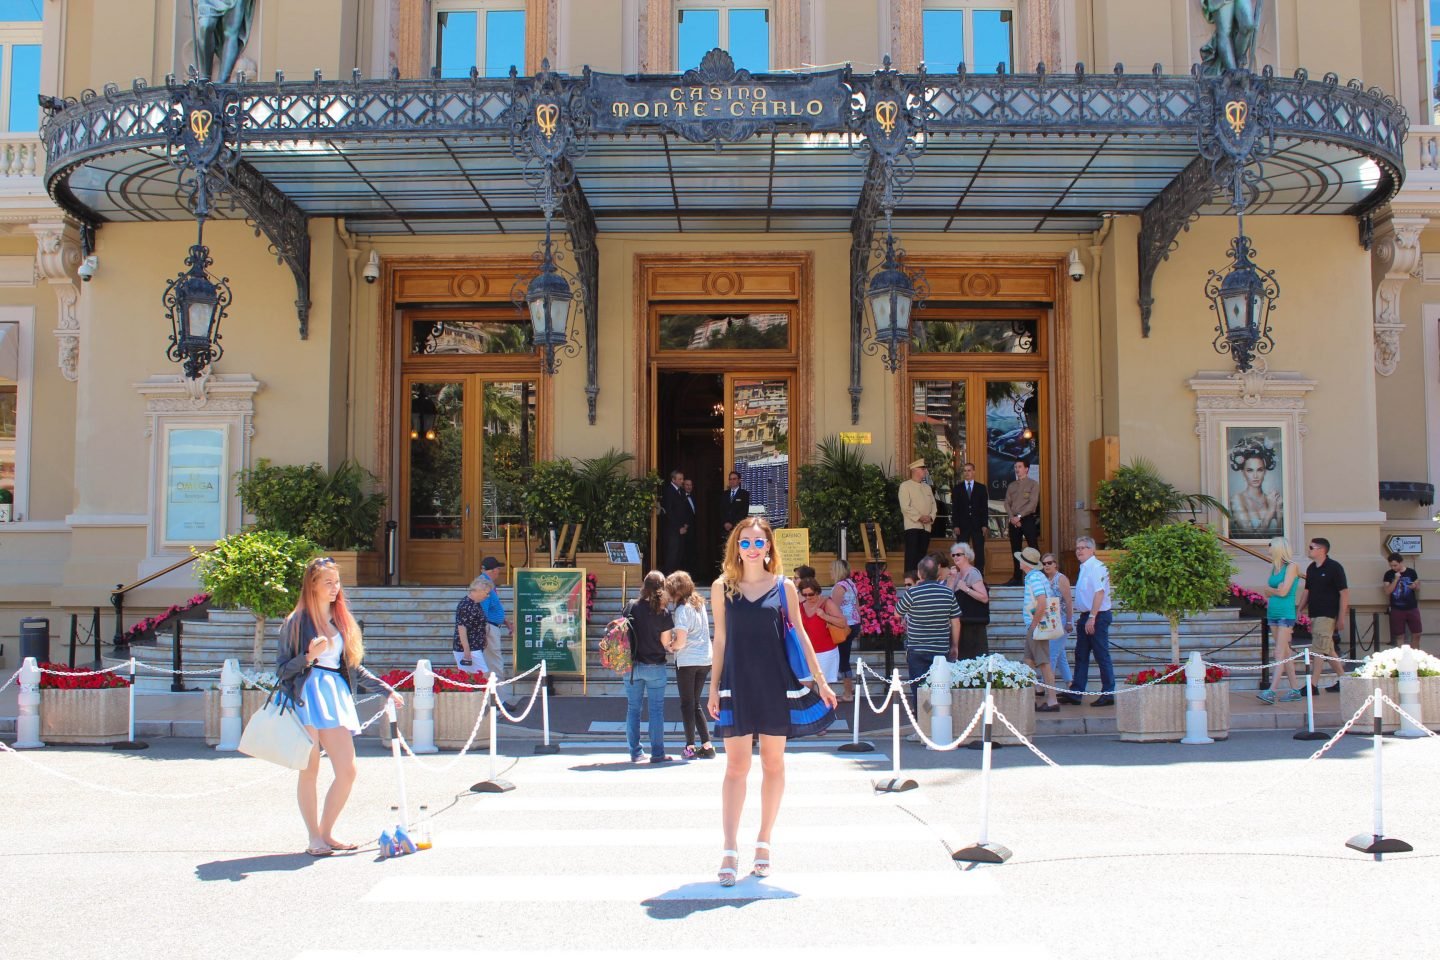 My Visit To Monaco Cafe De Paris And Casino De Monte Carlo - 10 coolest casinos world 2